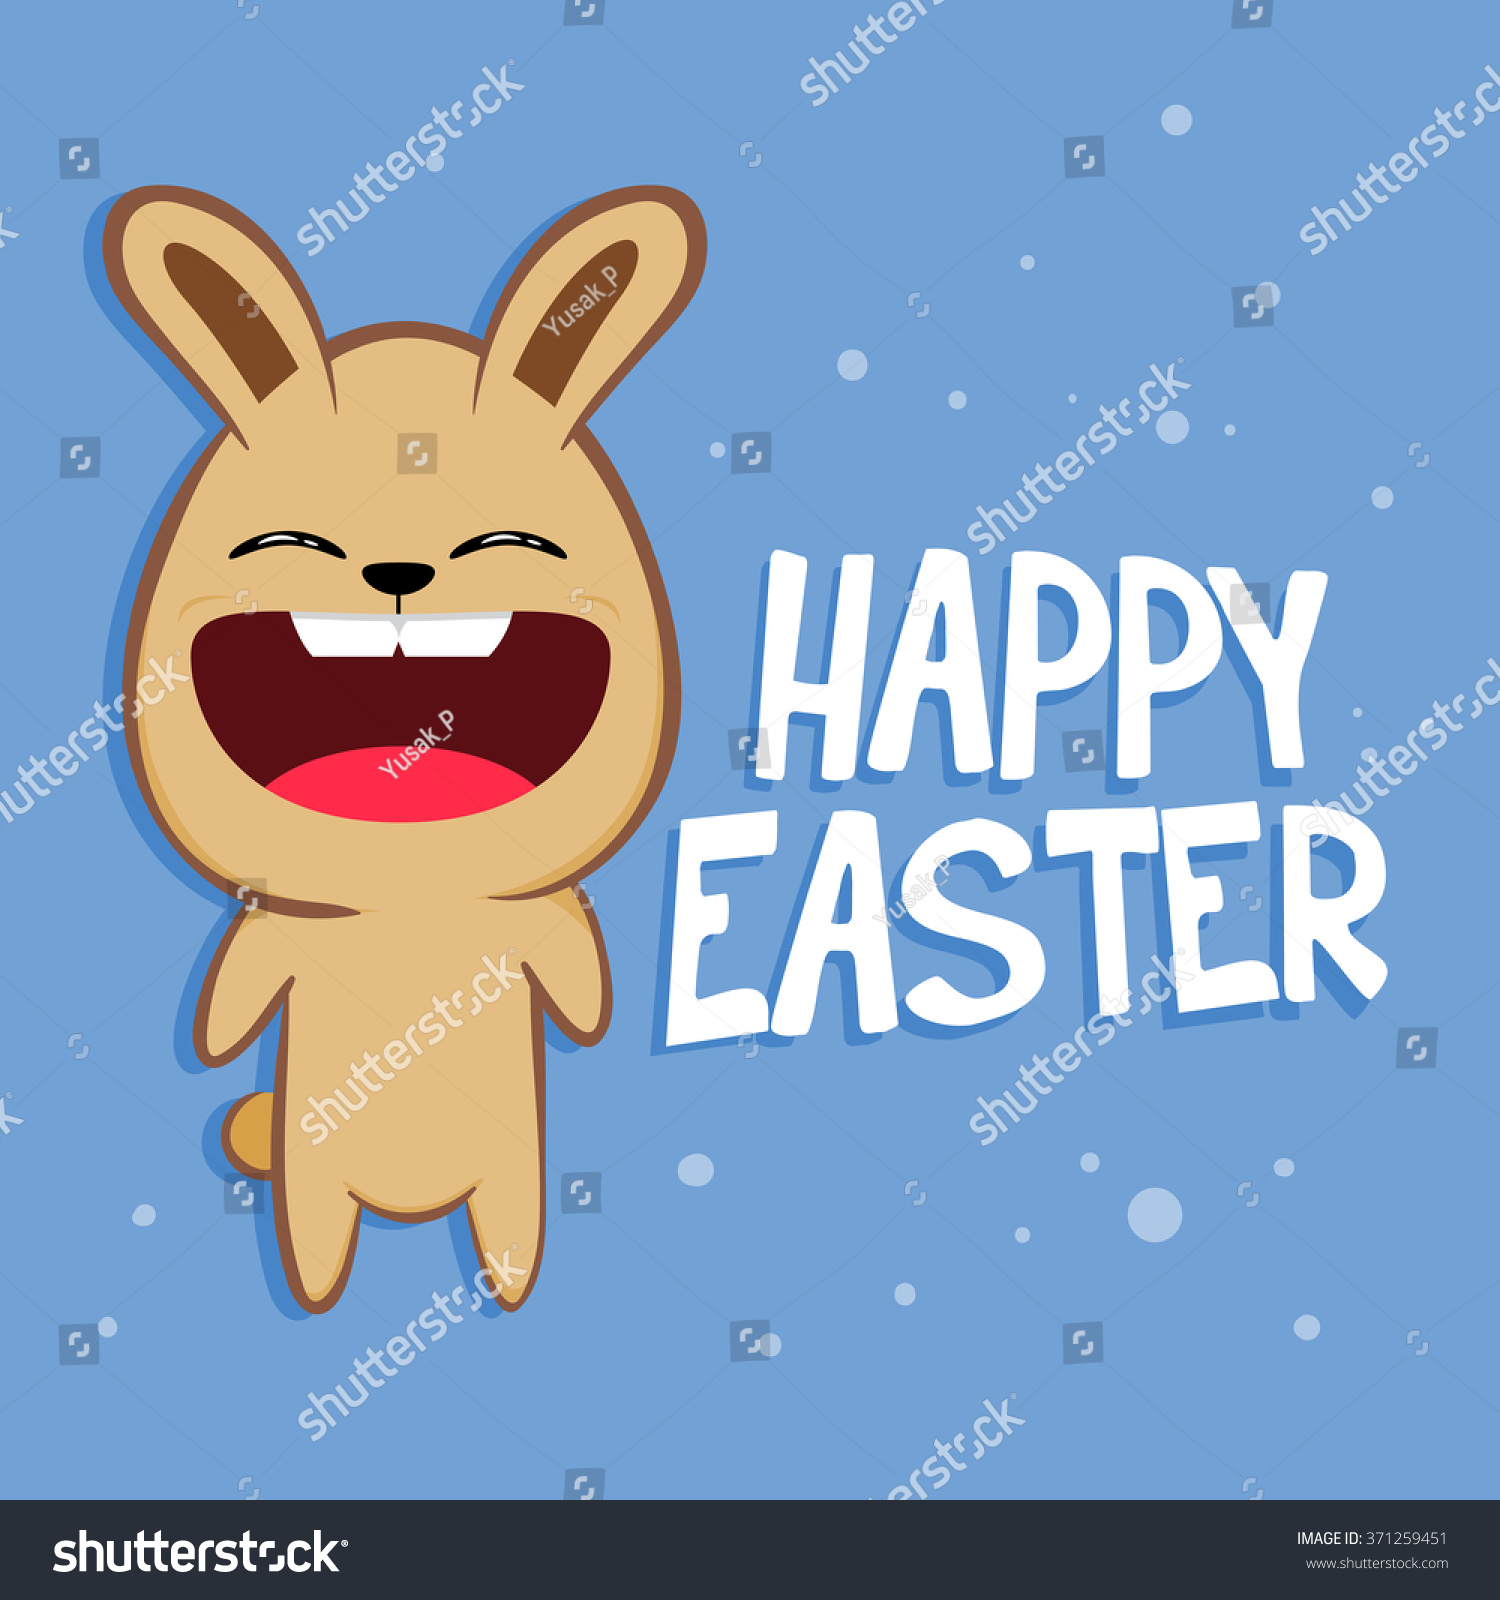 Funny rabbit shouting happy easter greetings stock vector 371259451 funny rabbit shouting happy easter greetings vector illustration kristyandbryce Choice Image